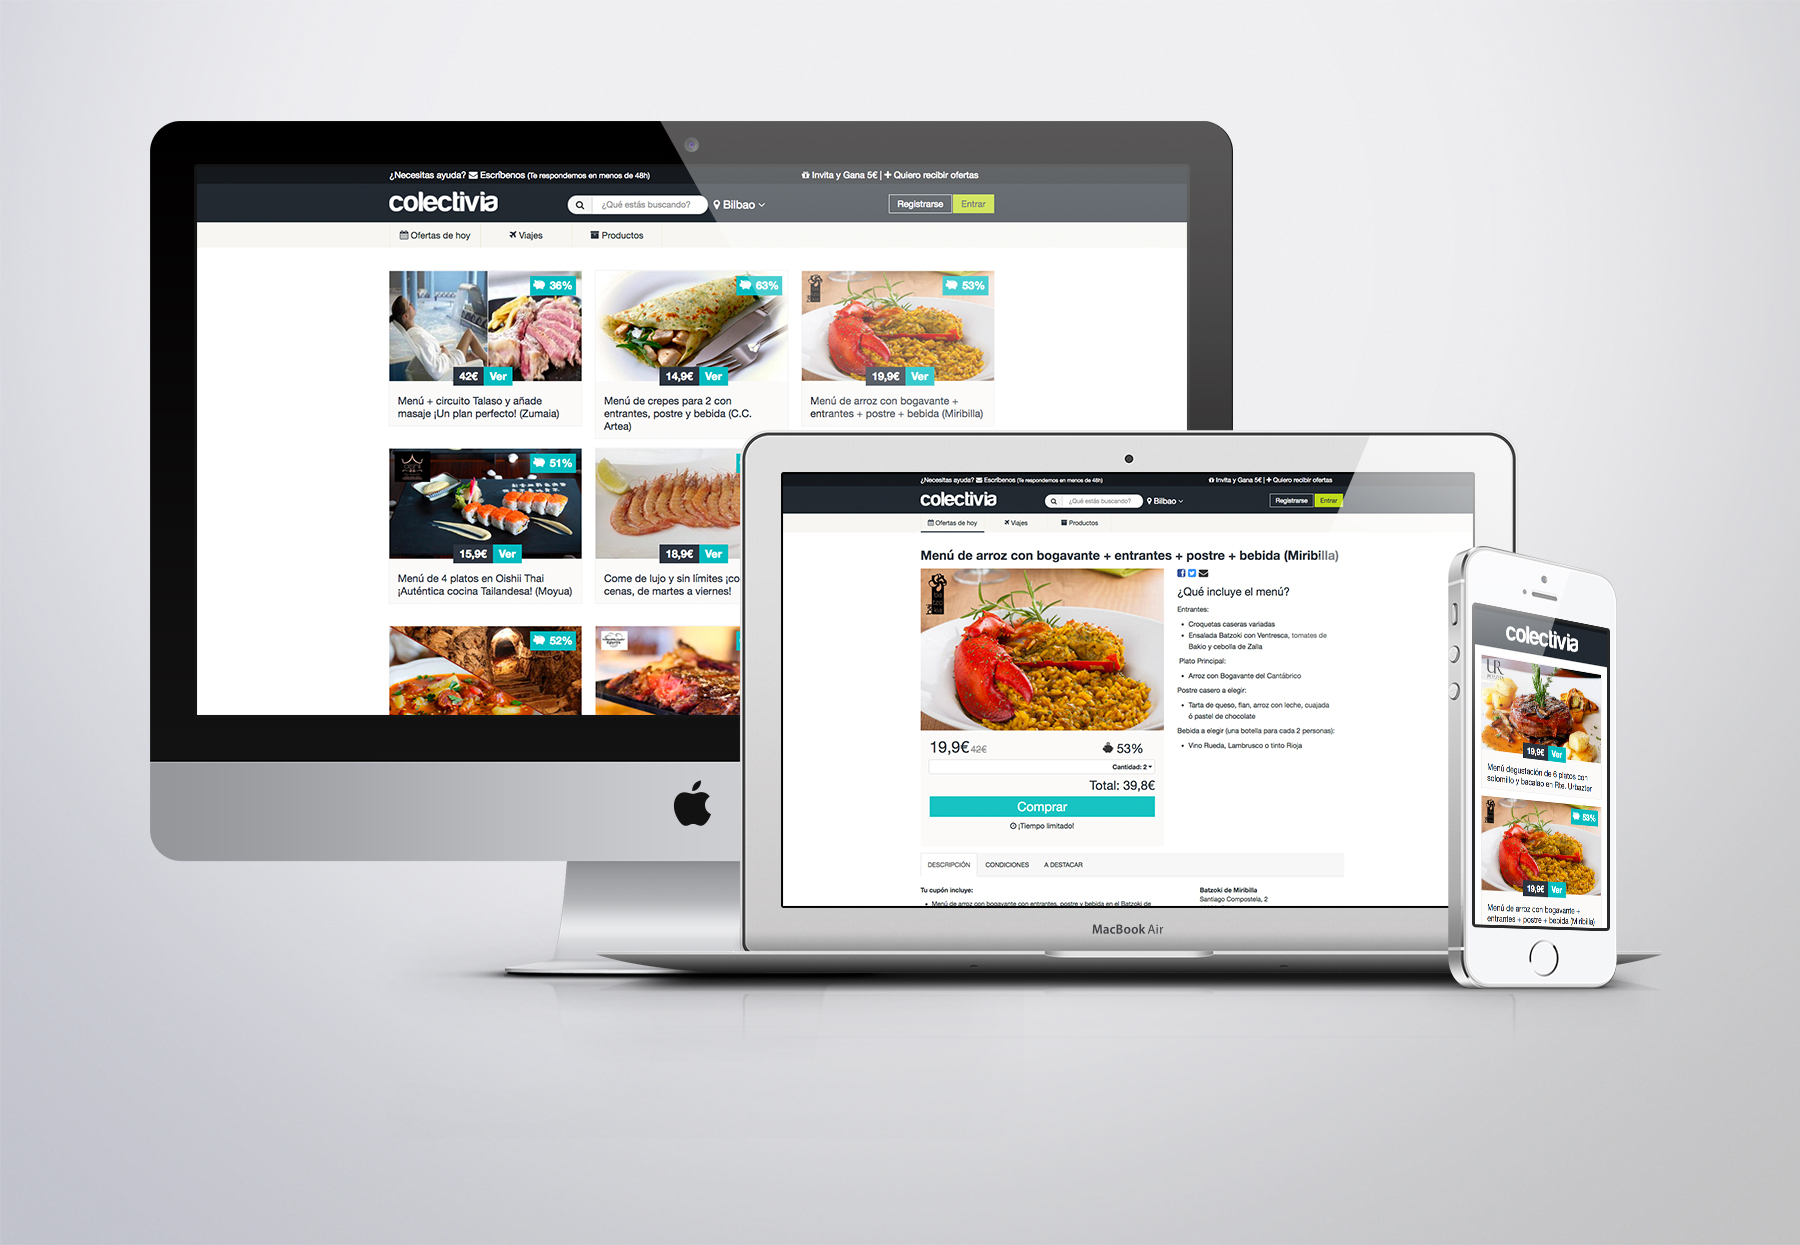 diseño pagina web newsletter banners colectivia